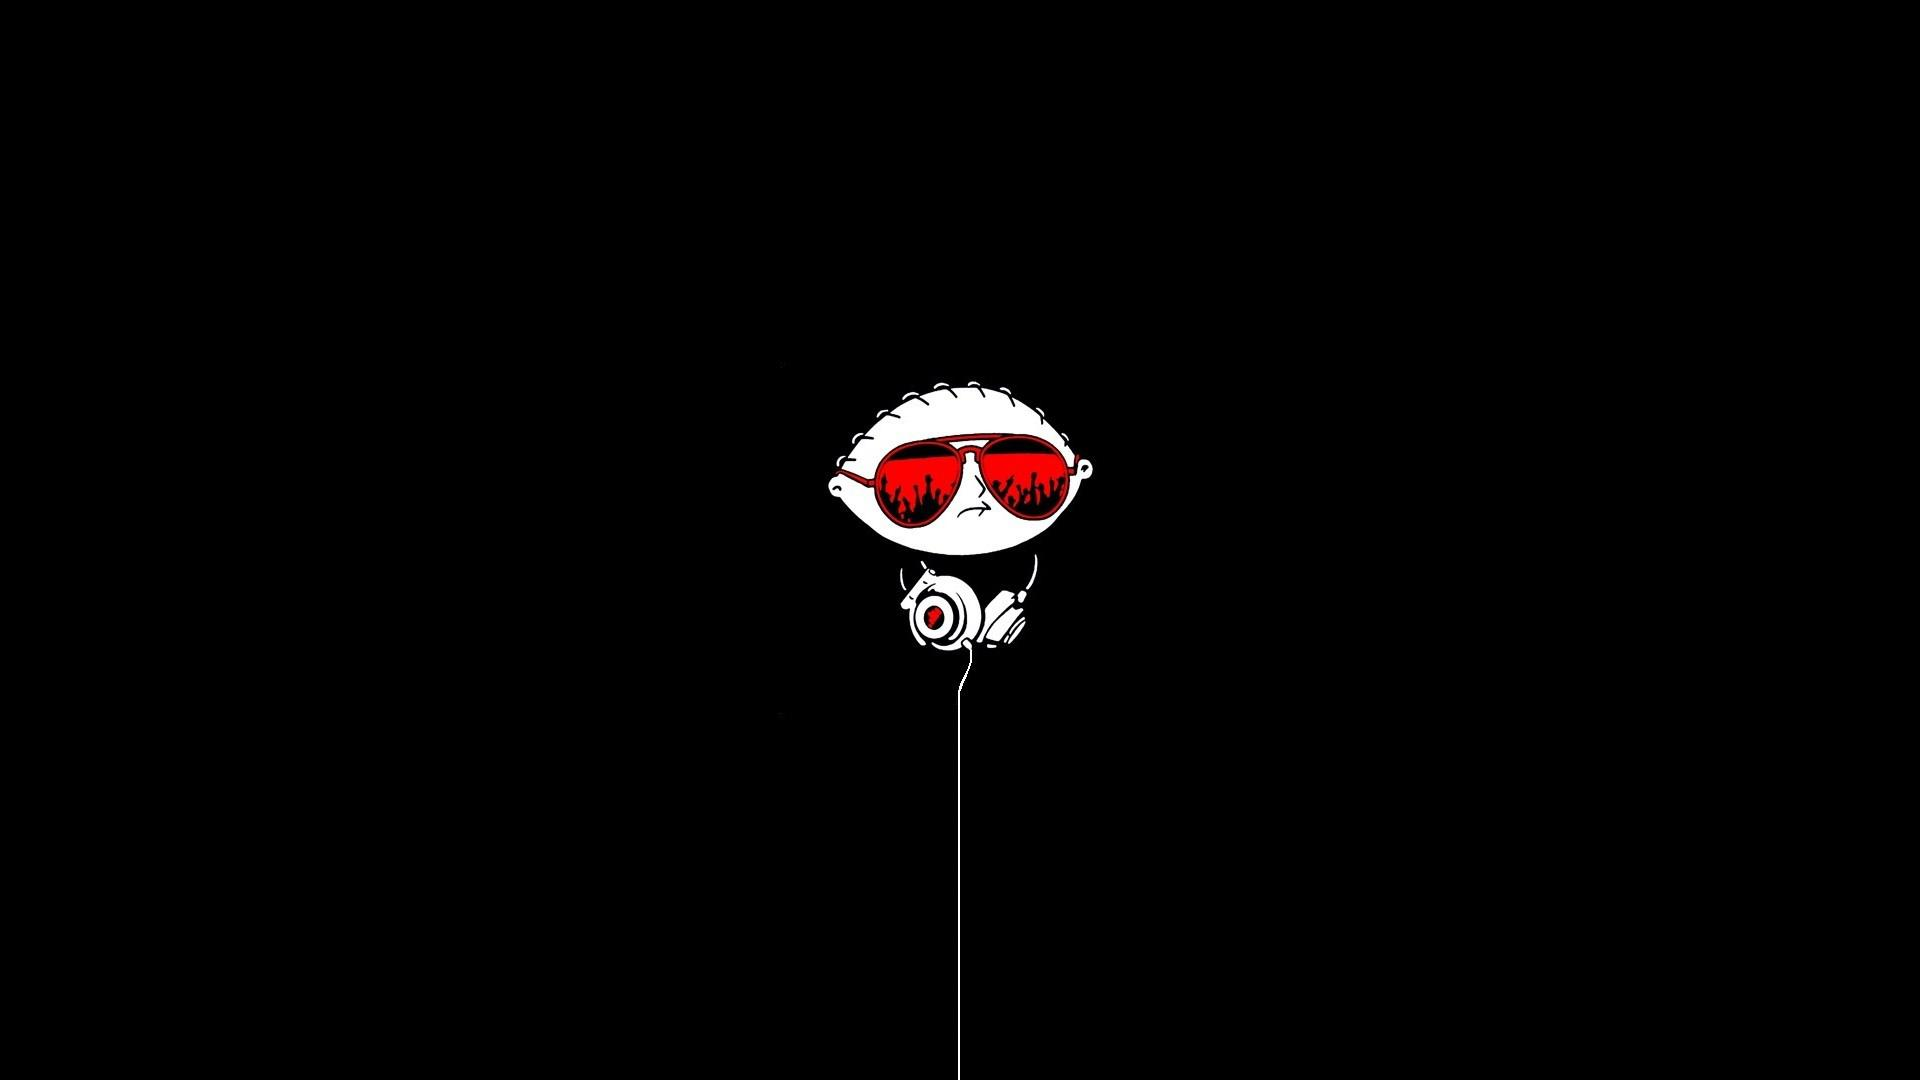 hd family guy glasses headphones for android wallpaper | download